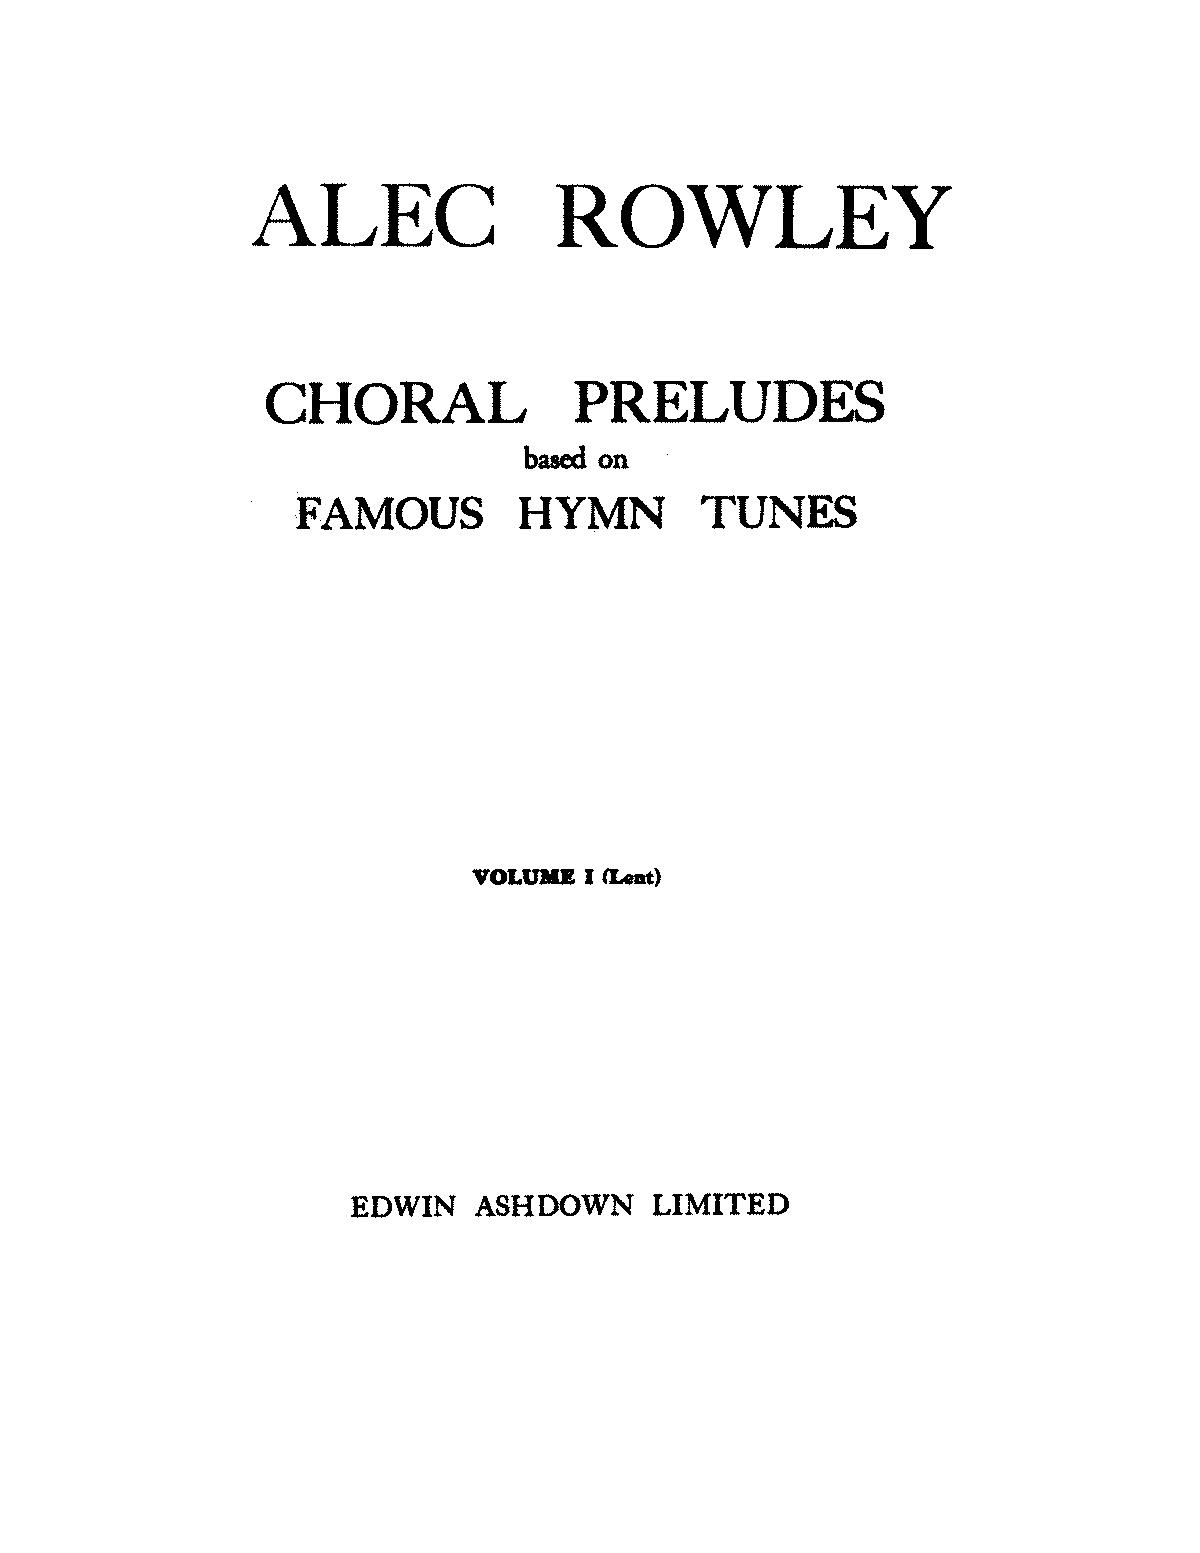 PMLP509762-Rowley Chorale Preludes Based on Famous Hymn Tunes, Volume 1.pdf